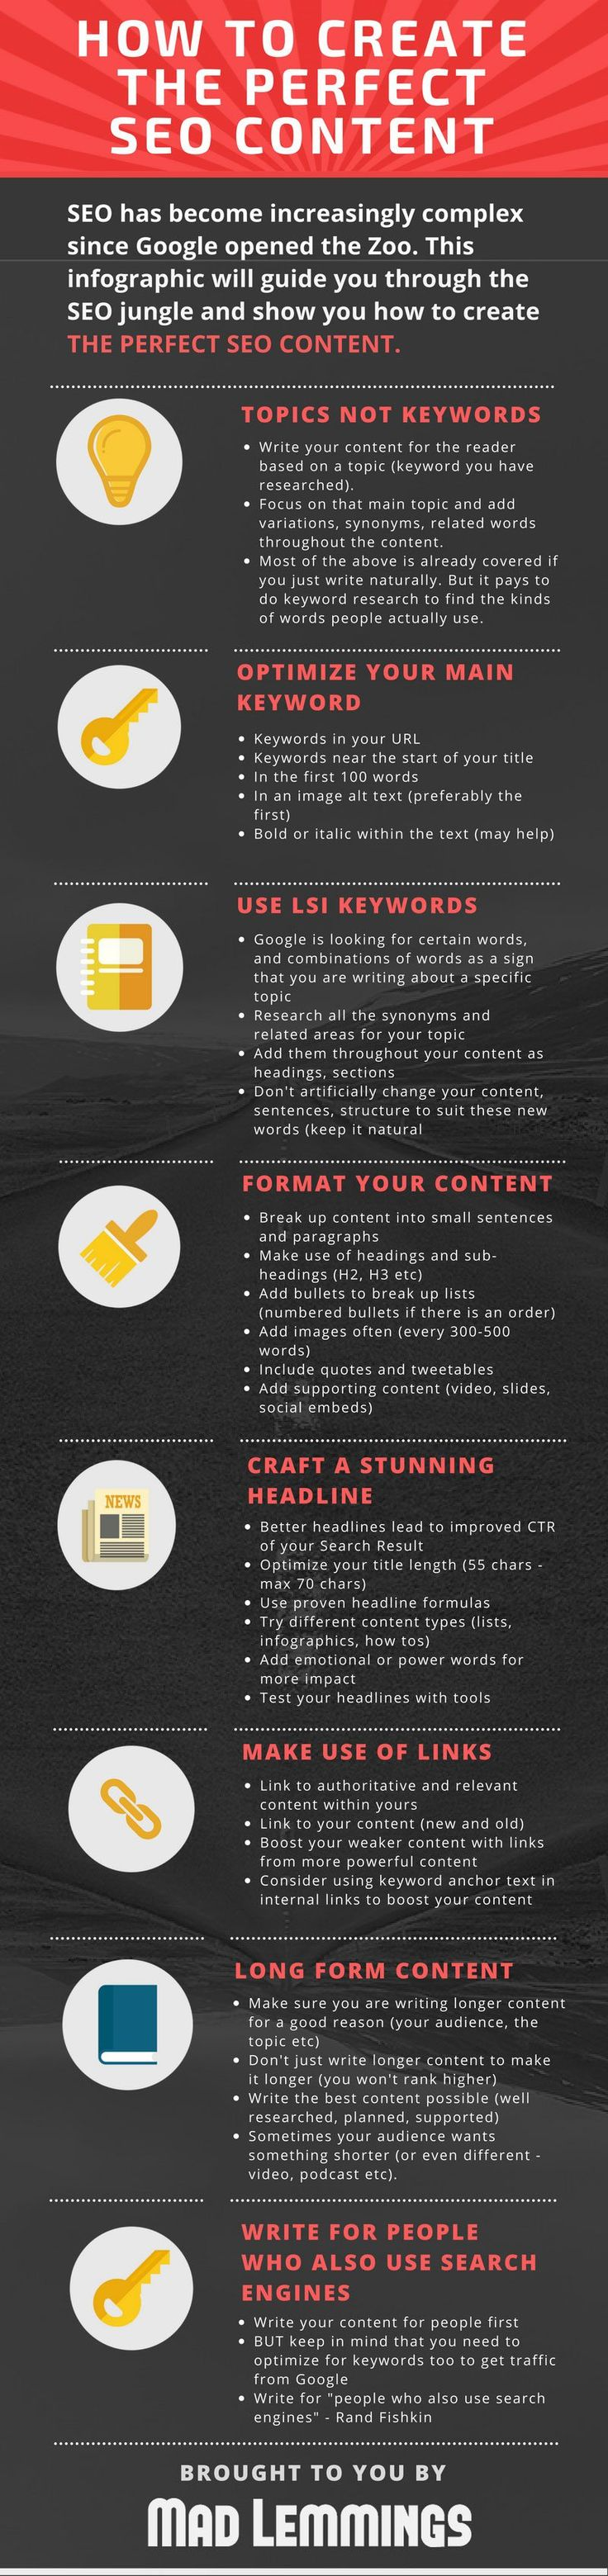 SEO Tips How to Create Website Content That Ranks Well on Google